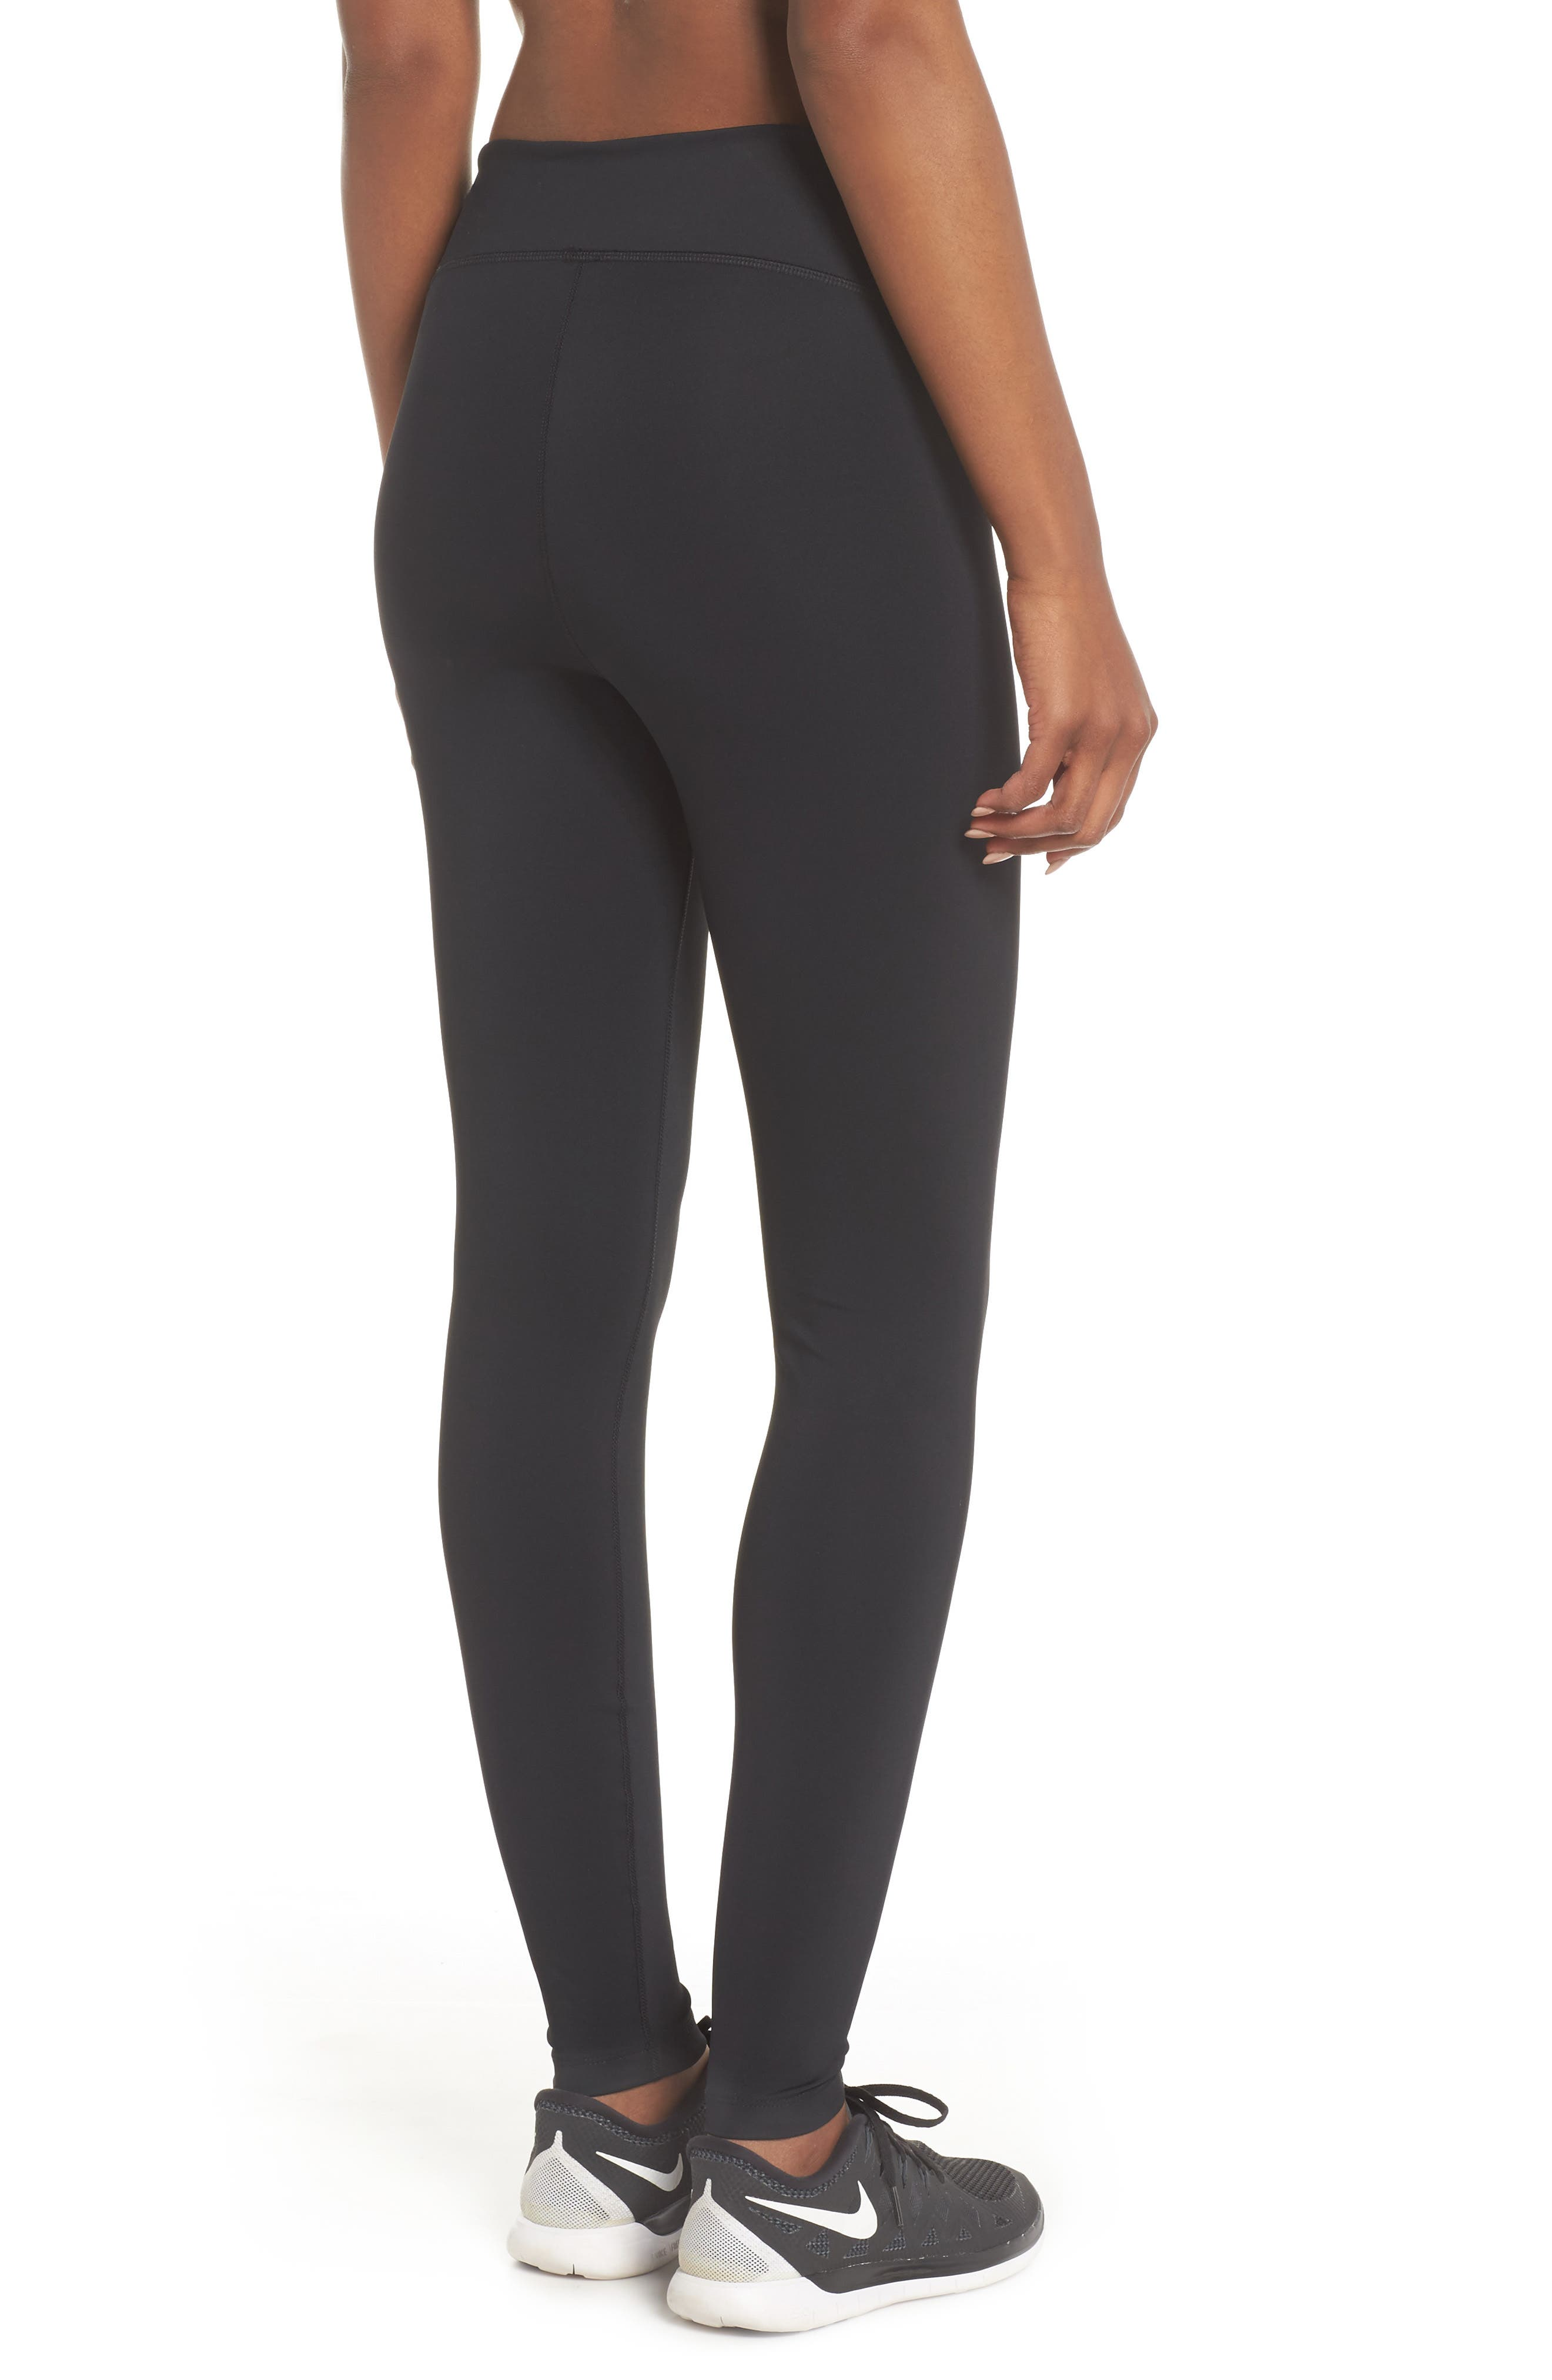 Power Tights,                             Alternate thumbnail 2, color,                             BLACK/ CLEAR